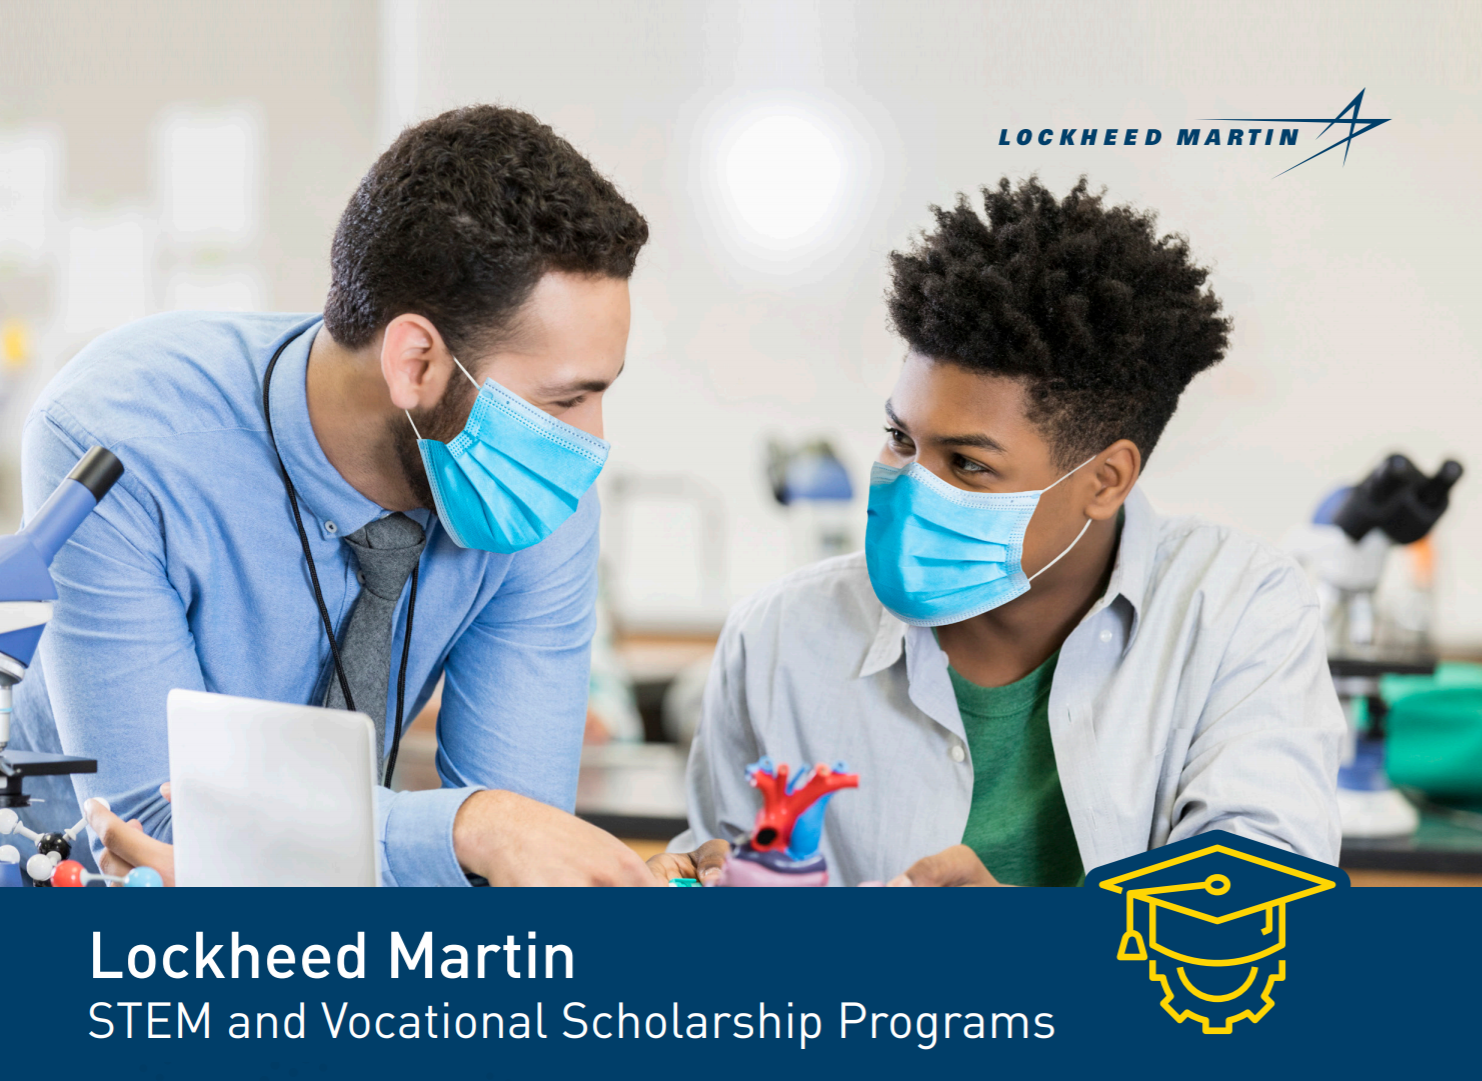 Lockheed Martin STEM and Vocational Scholarship Programs